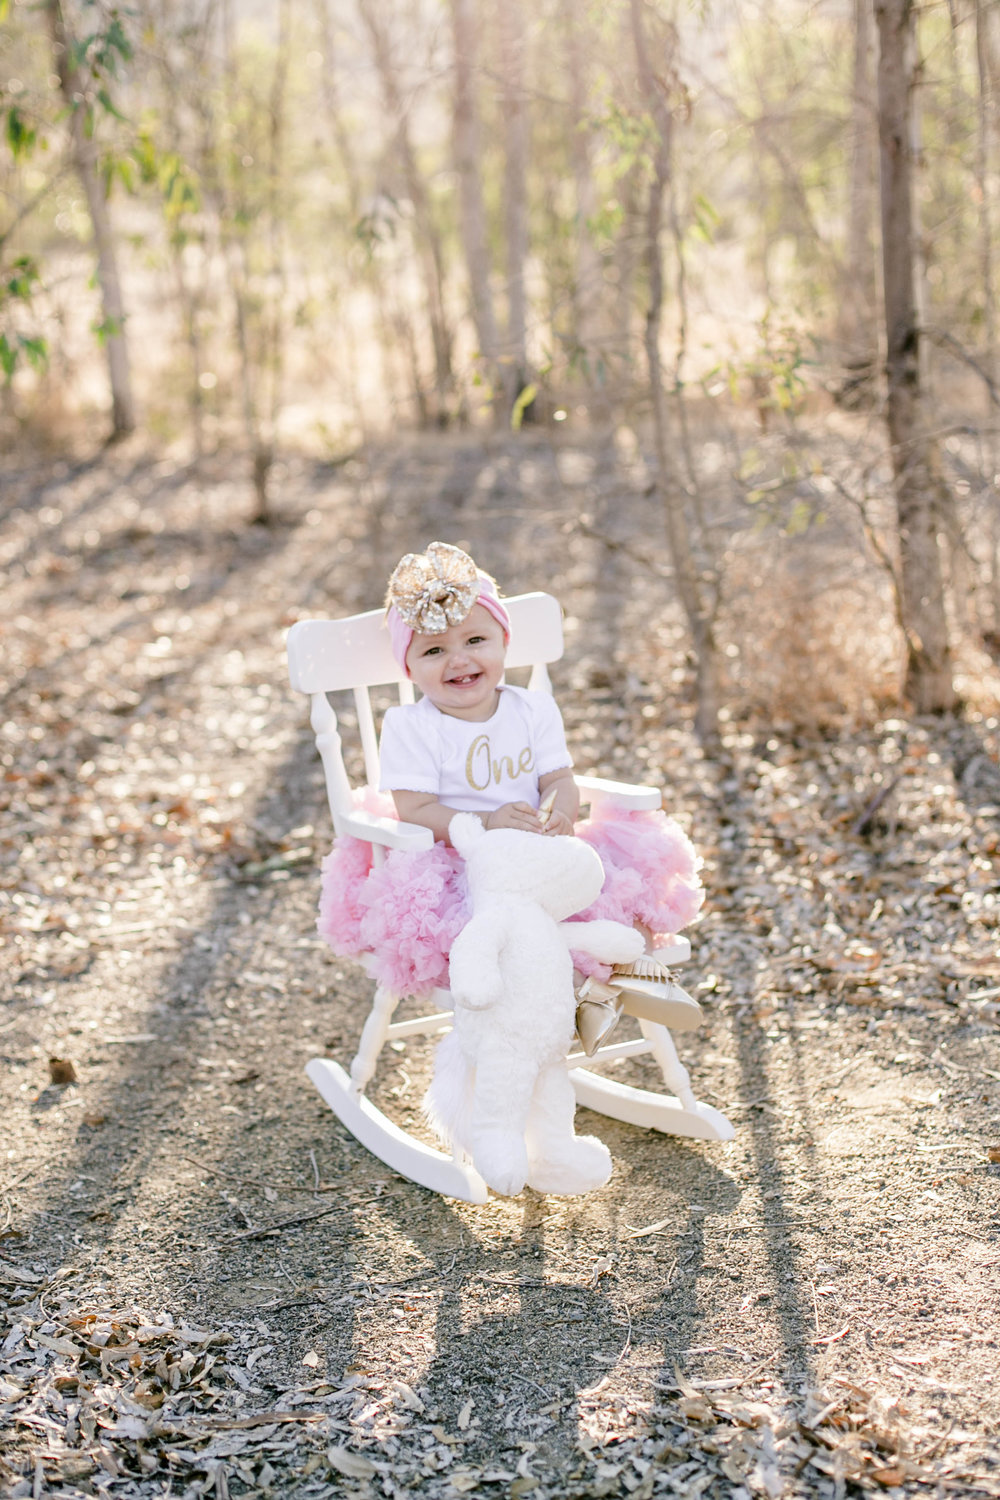 Isla Cutrano1st Bday shoot-17.jpg